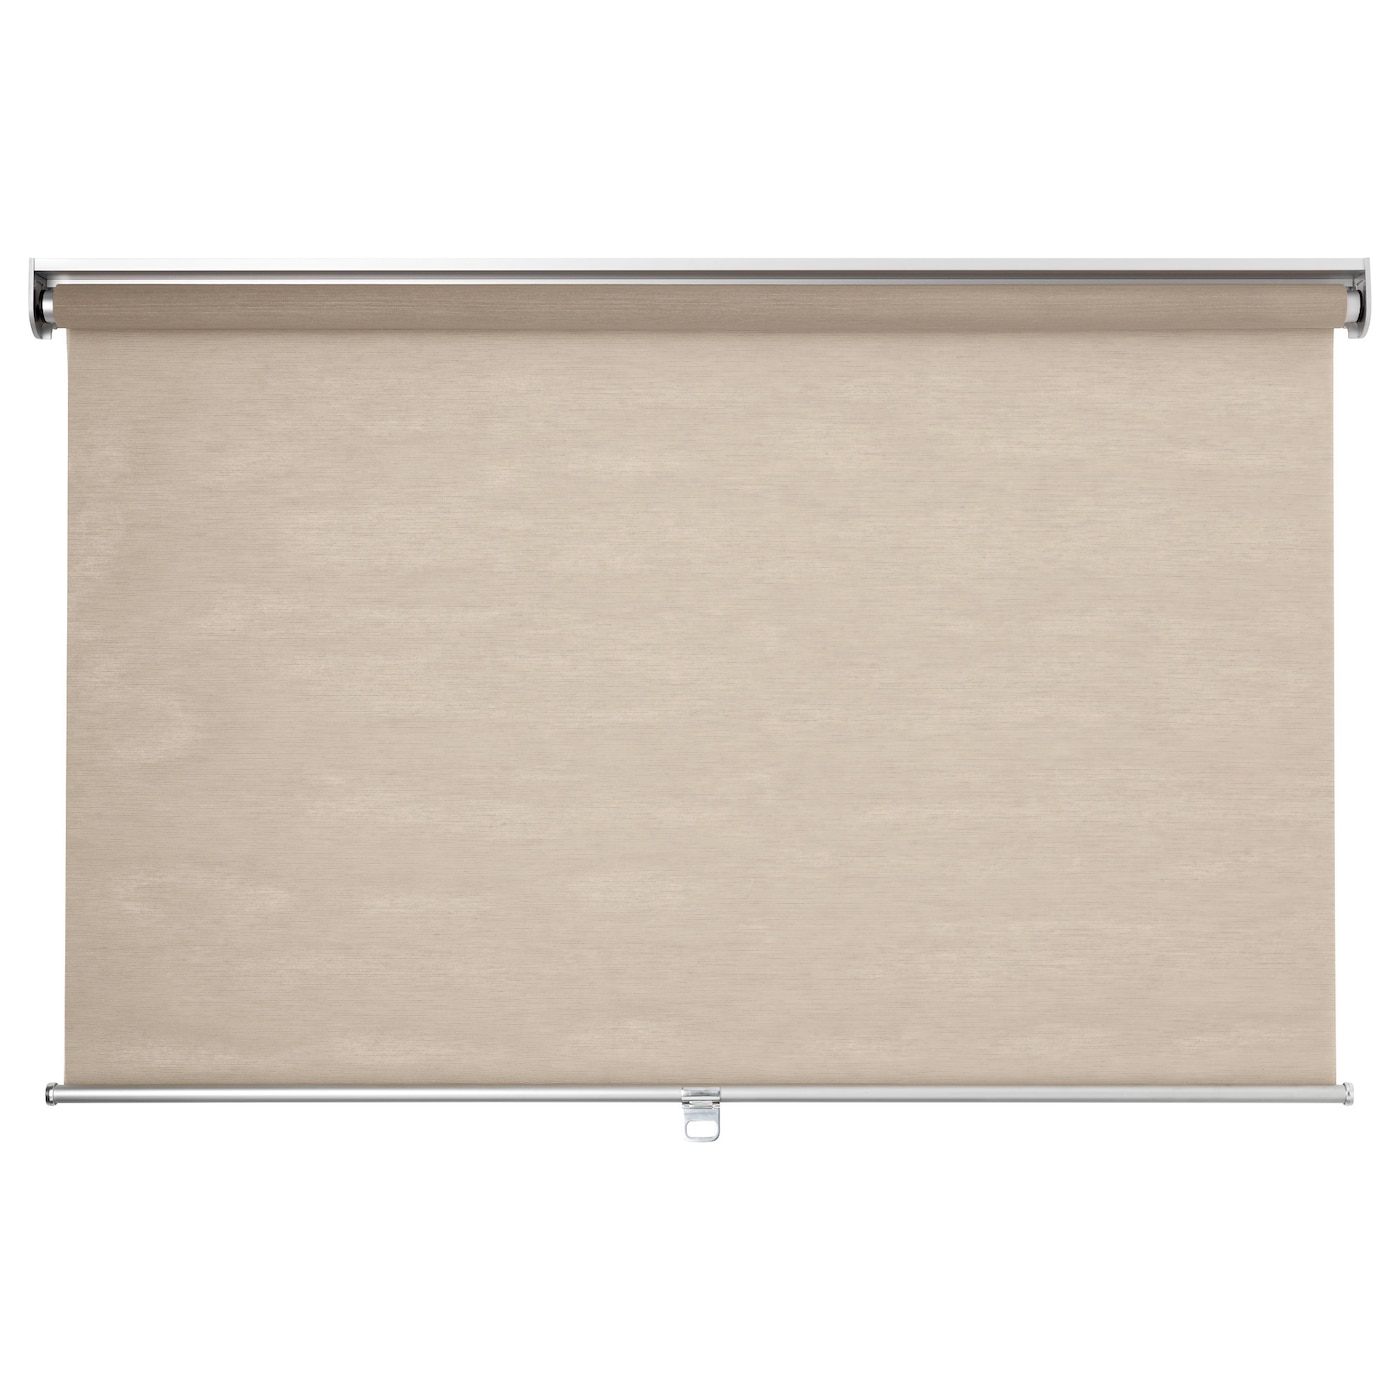 roller a vinyl door mini blinds wiki wikipedia on blind cheap window